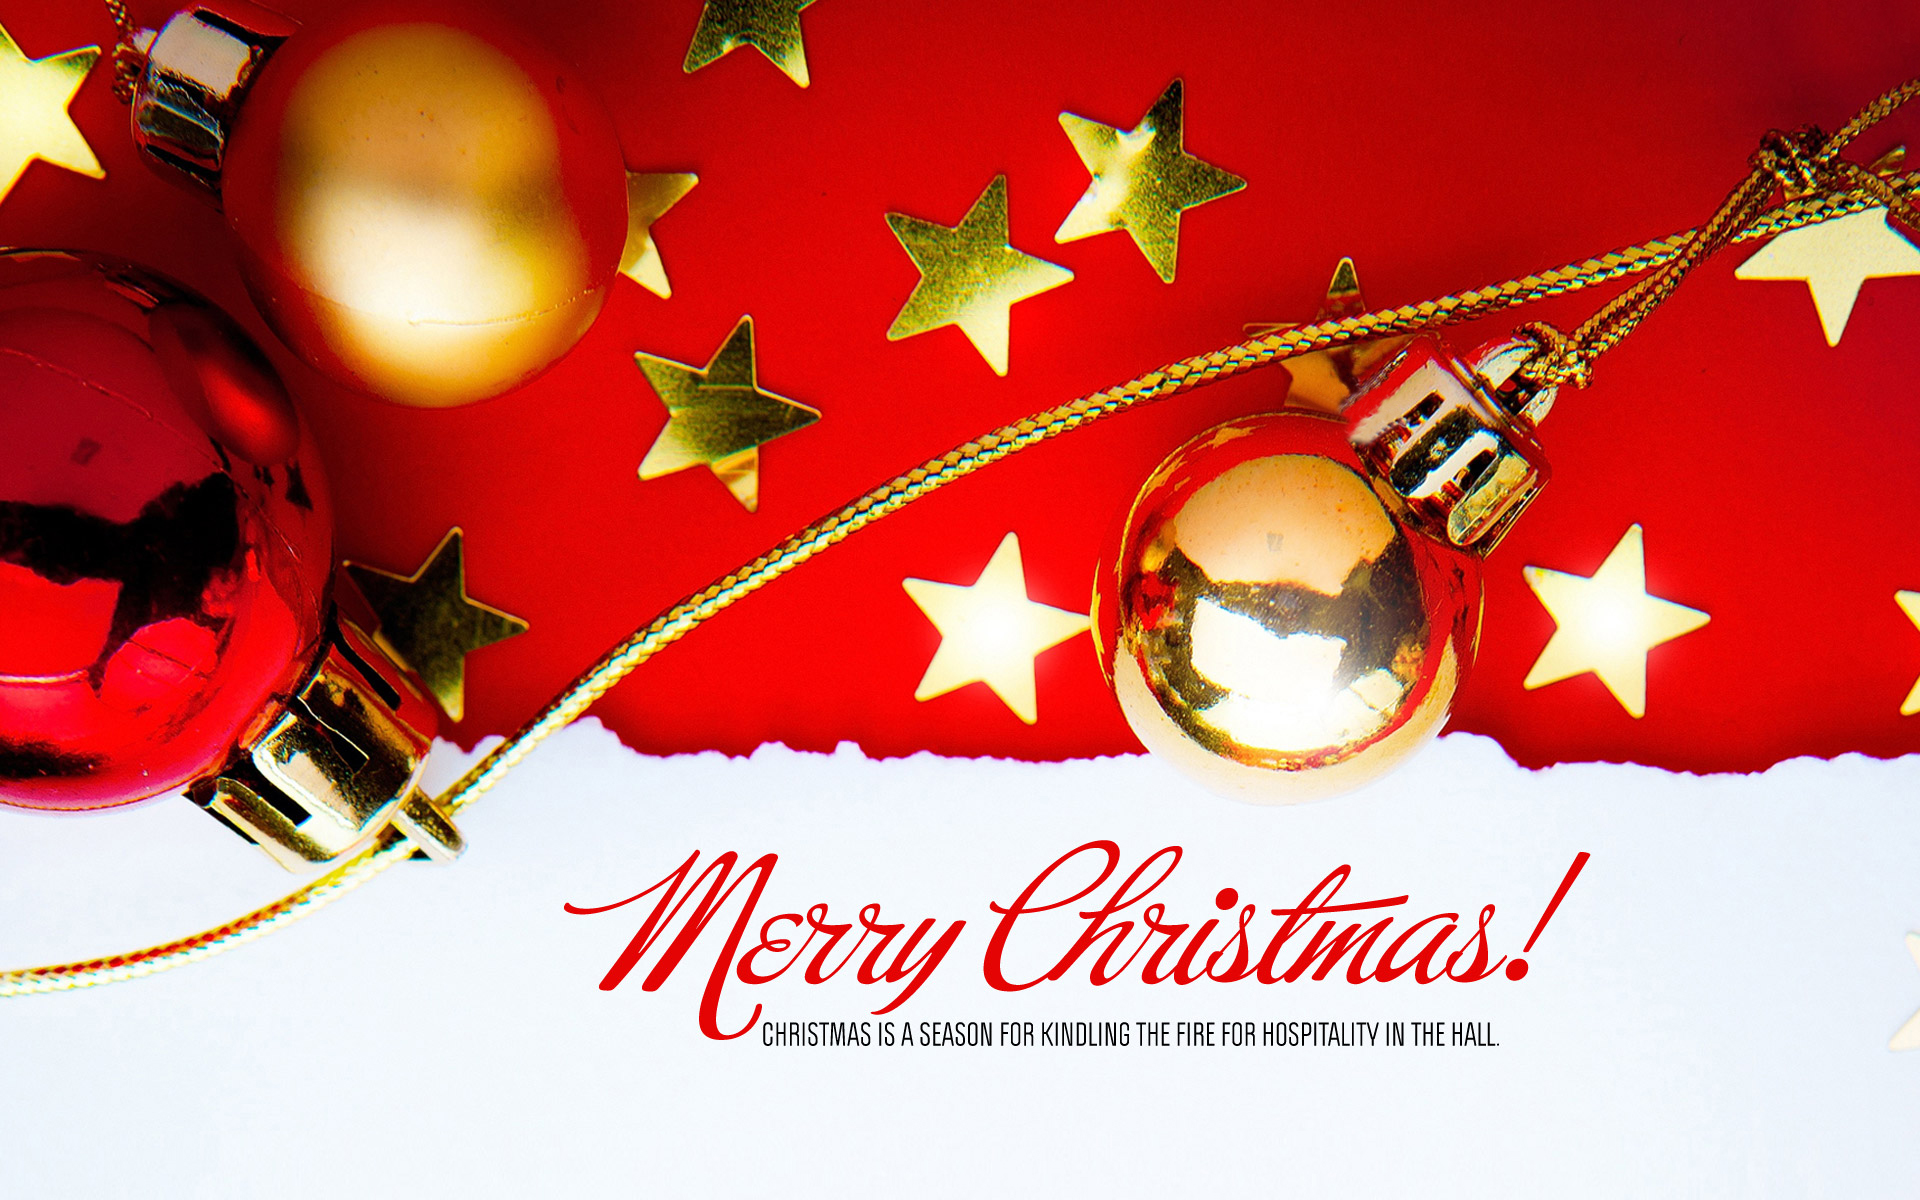 Best-Wishes-for-Christmas-2014